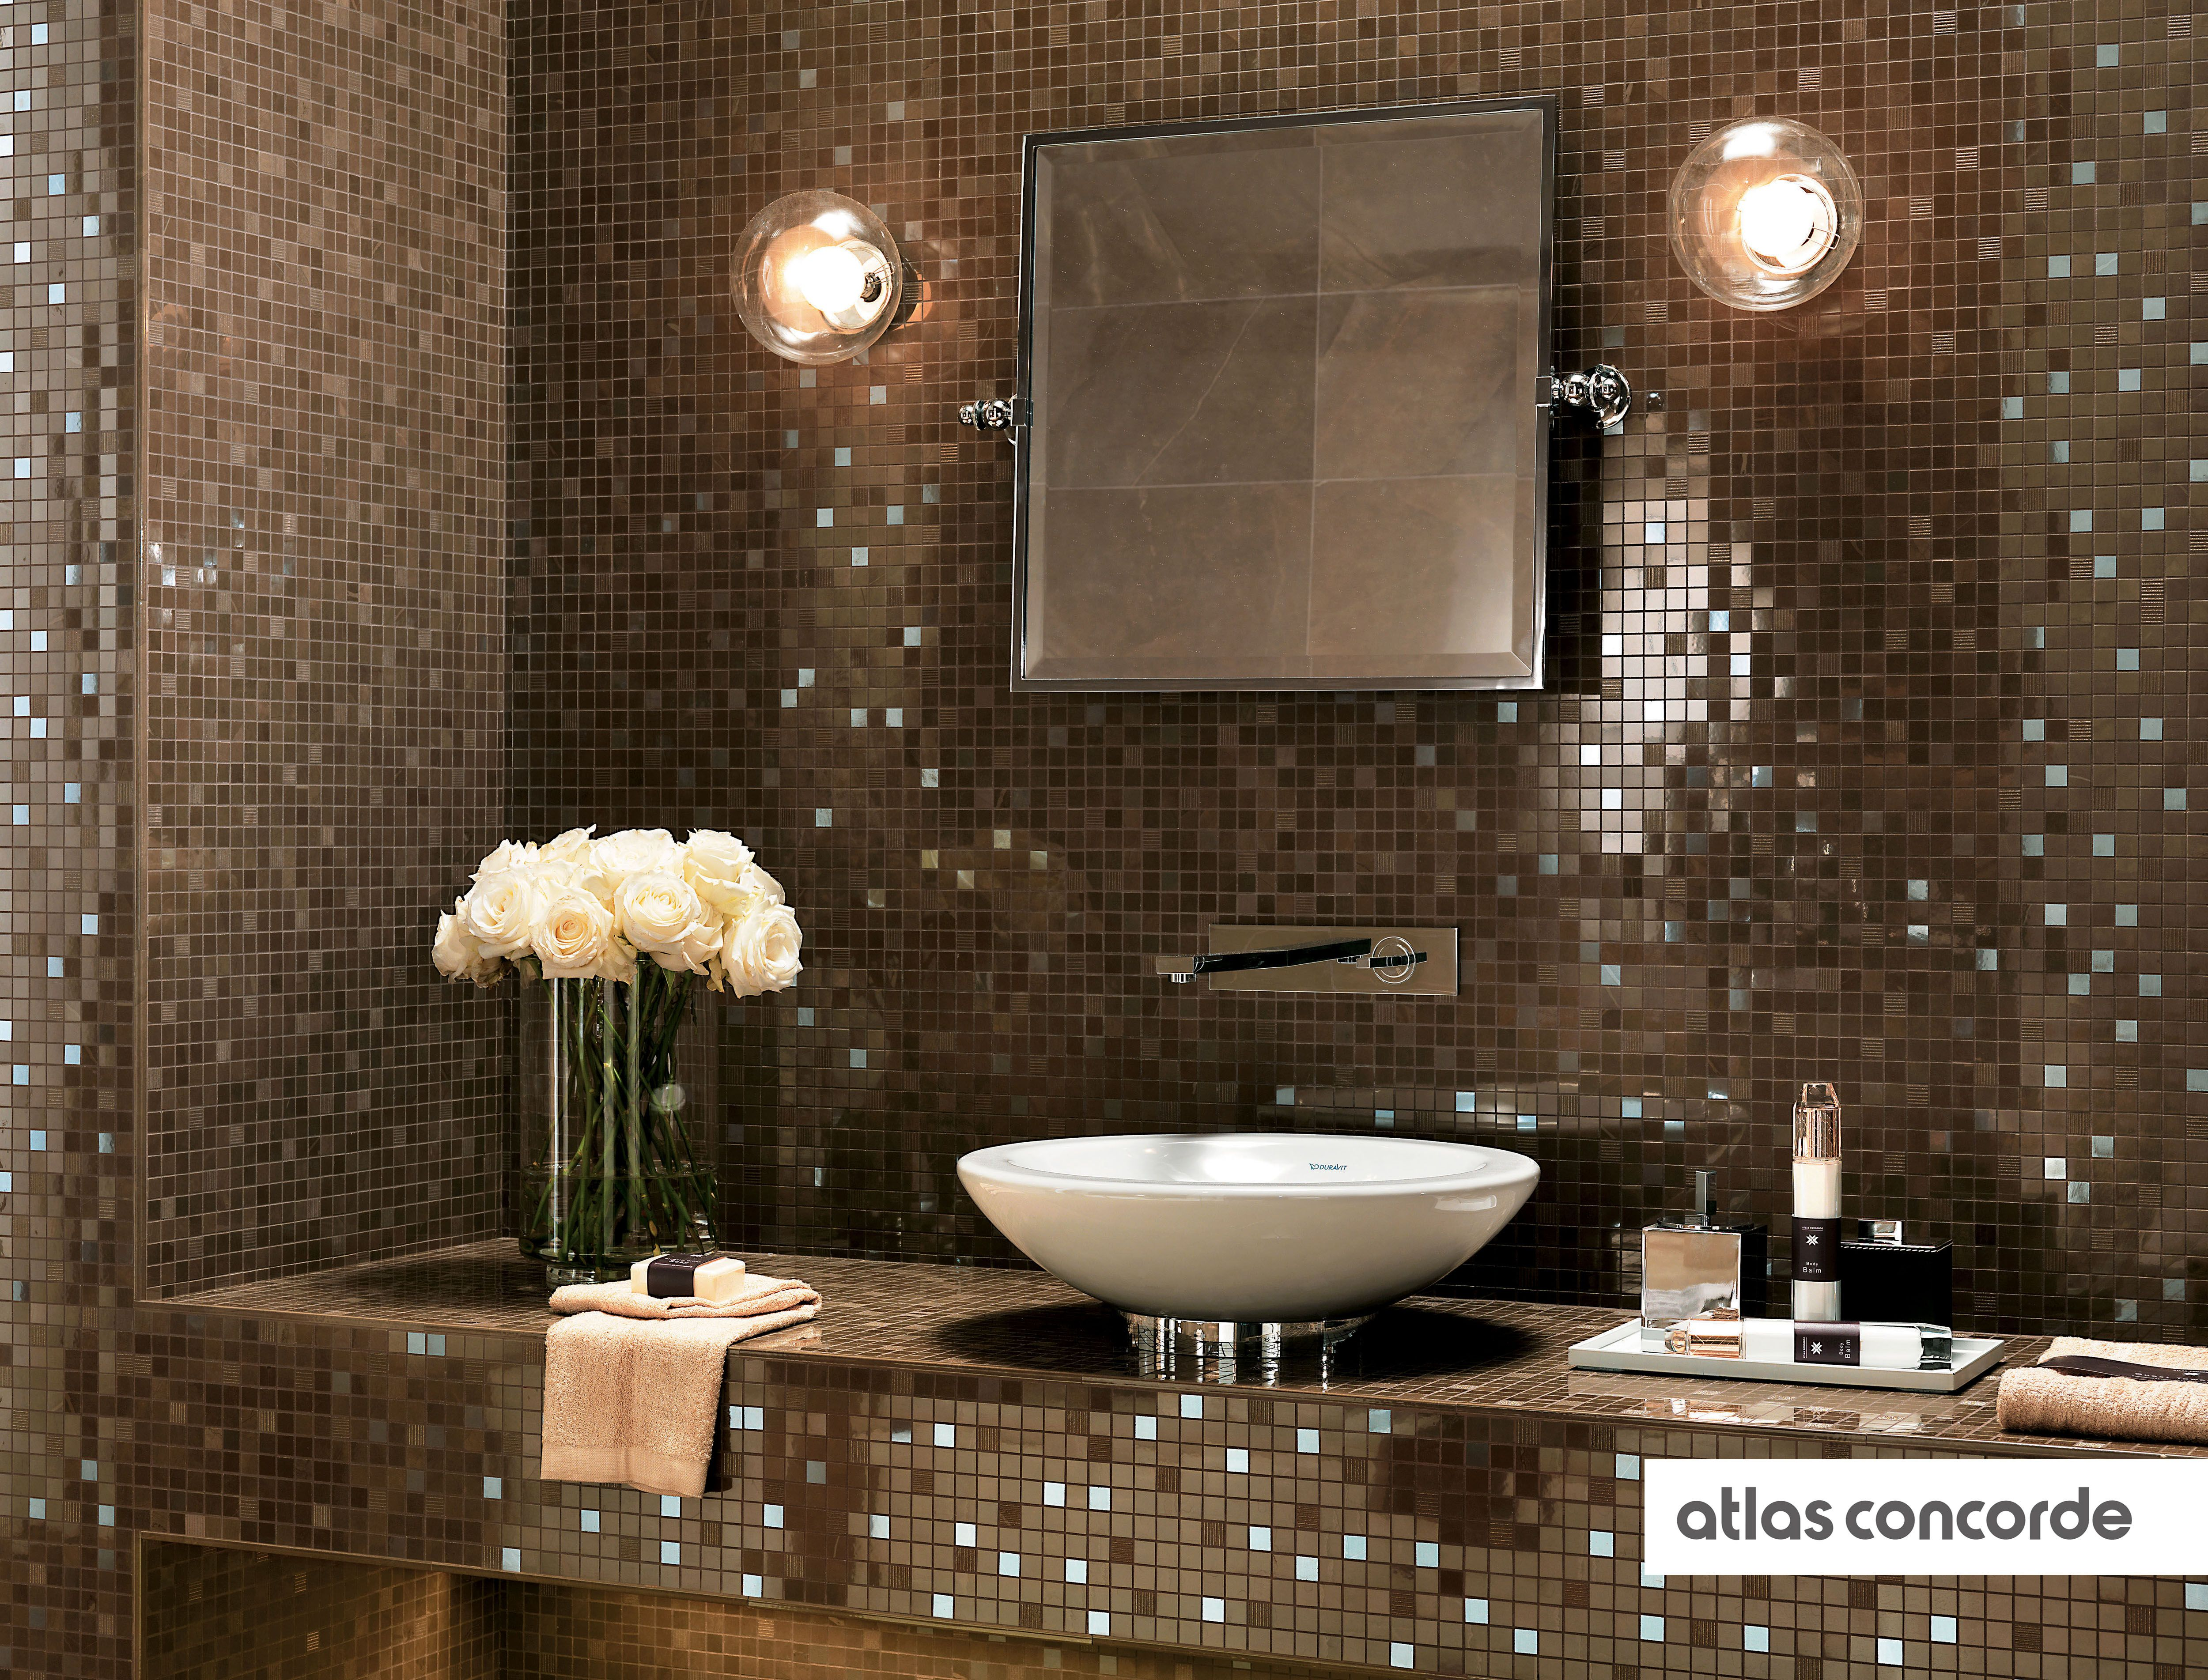 Collections mosaic wall mosaics and concorde marvel bronze mosaic wall design atlasconcorde tiles dailygadgetfo Choice Image